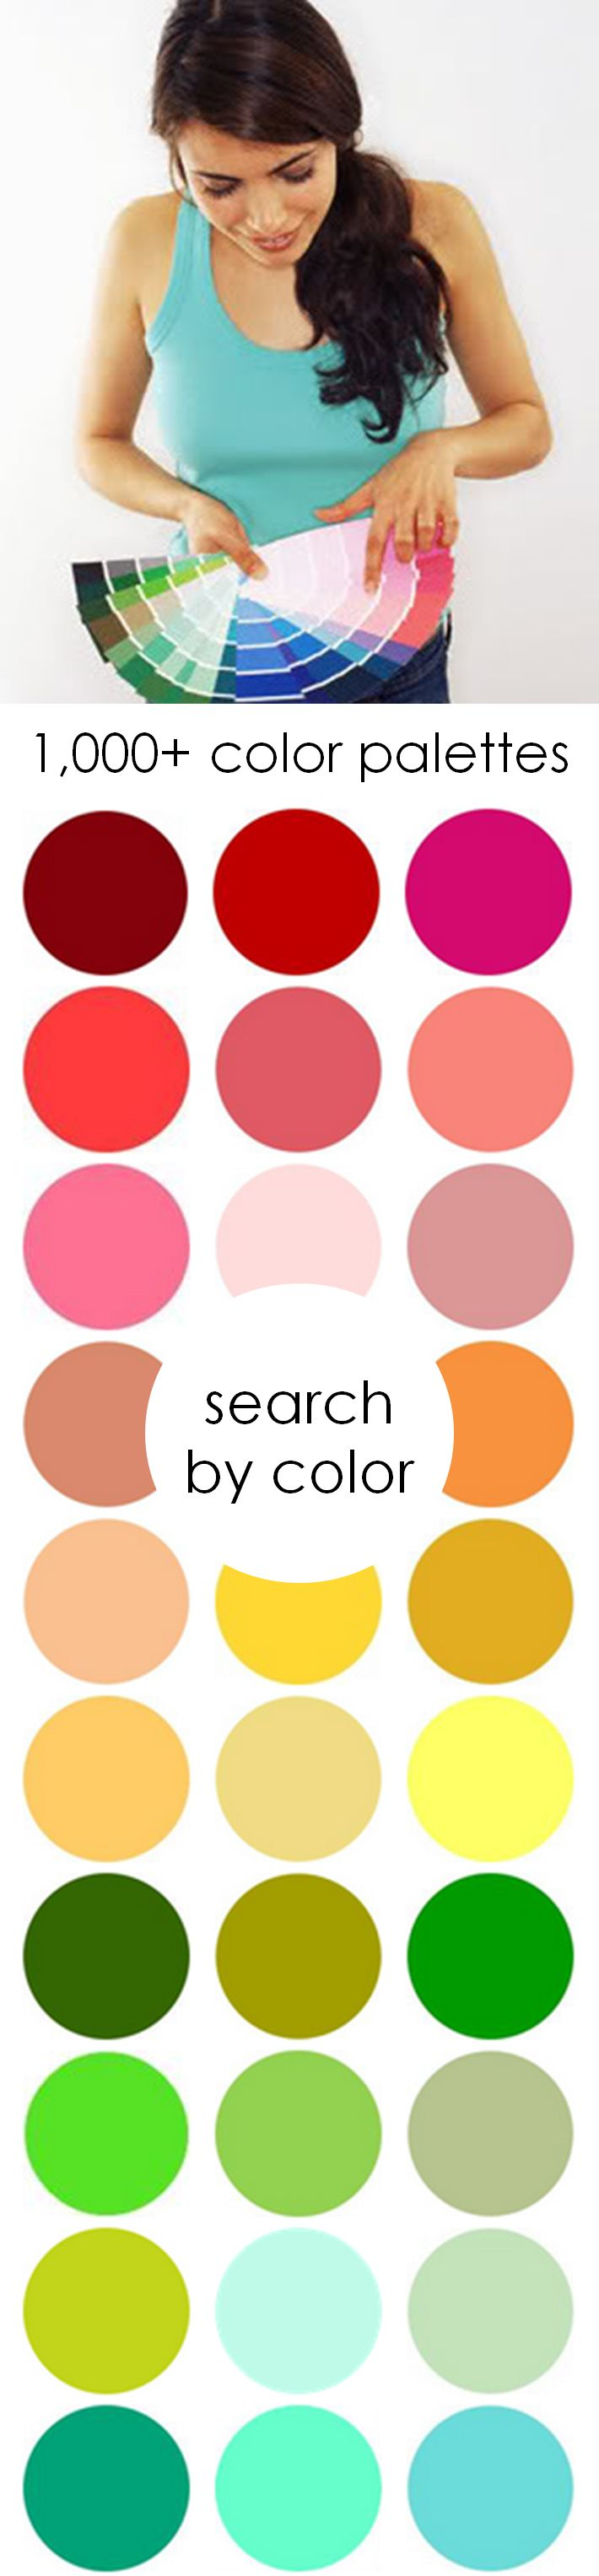 1,000+ color palettes. Color ideas for weddings, parties & life! Search by…